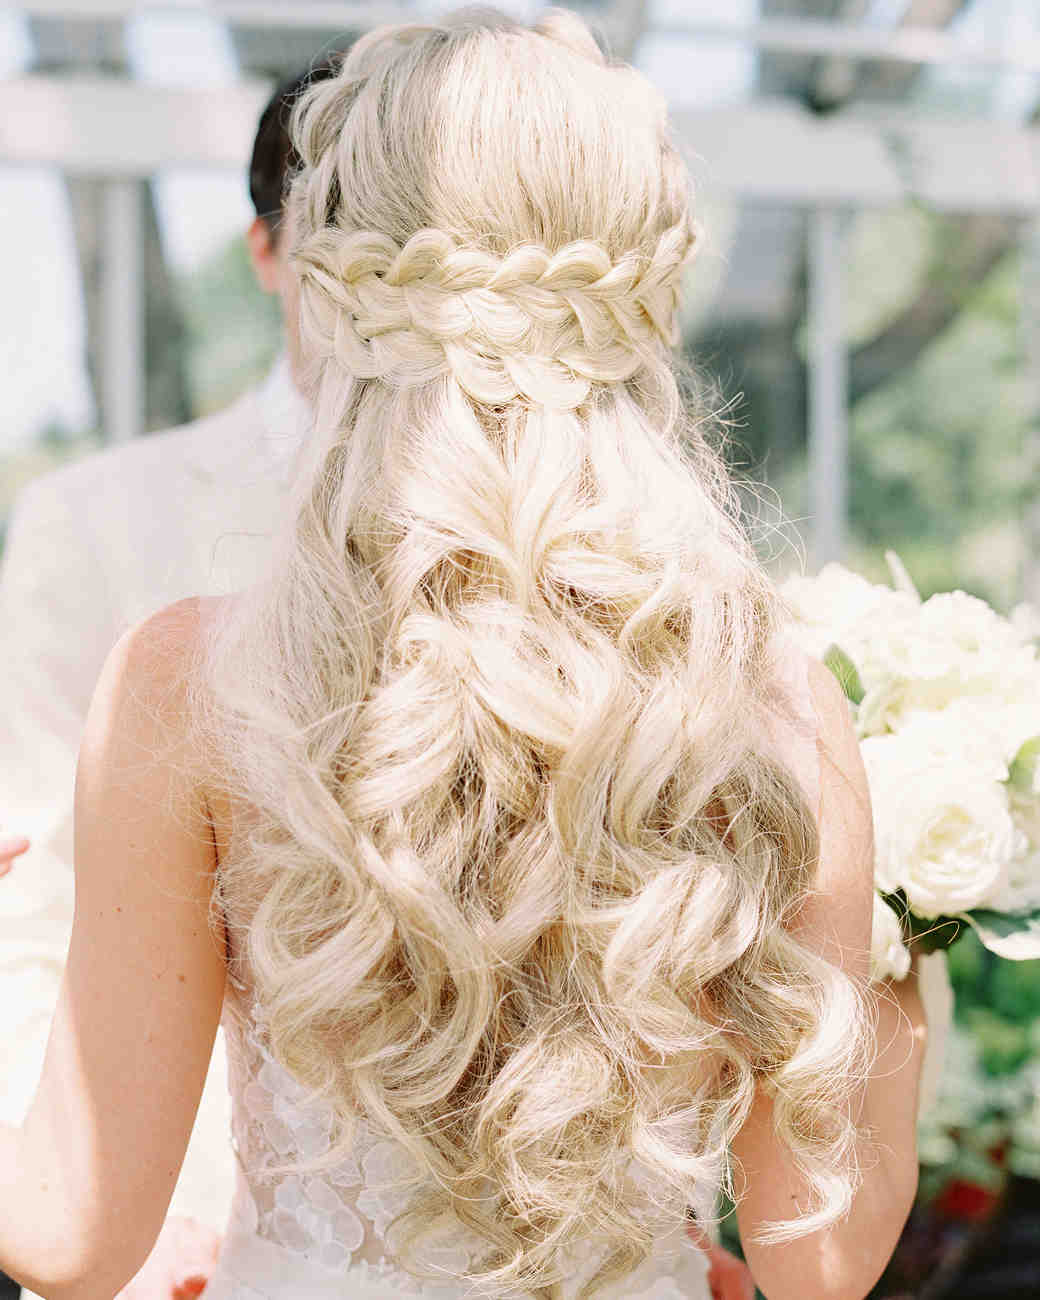 Hairstyles For Girls In Wedding: 28 Half-Up, Half-Down Wedding Hairstyles We Love